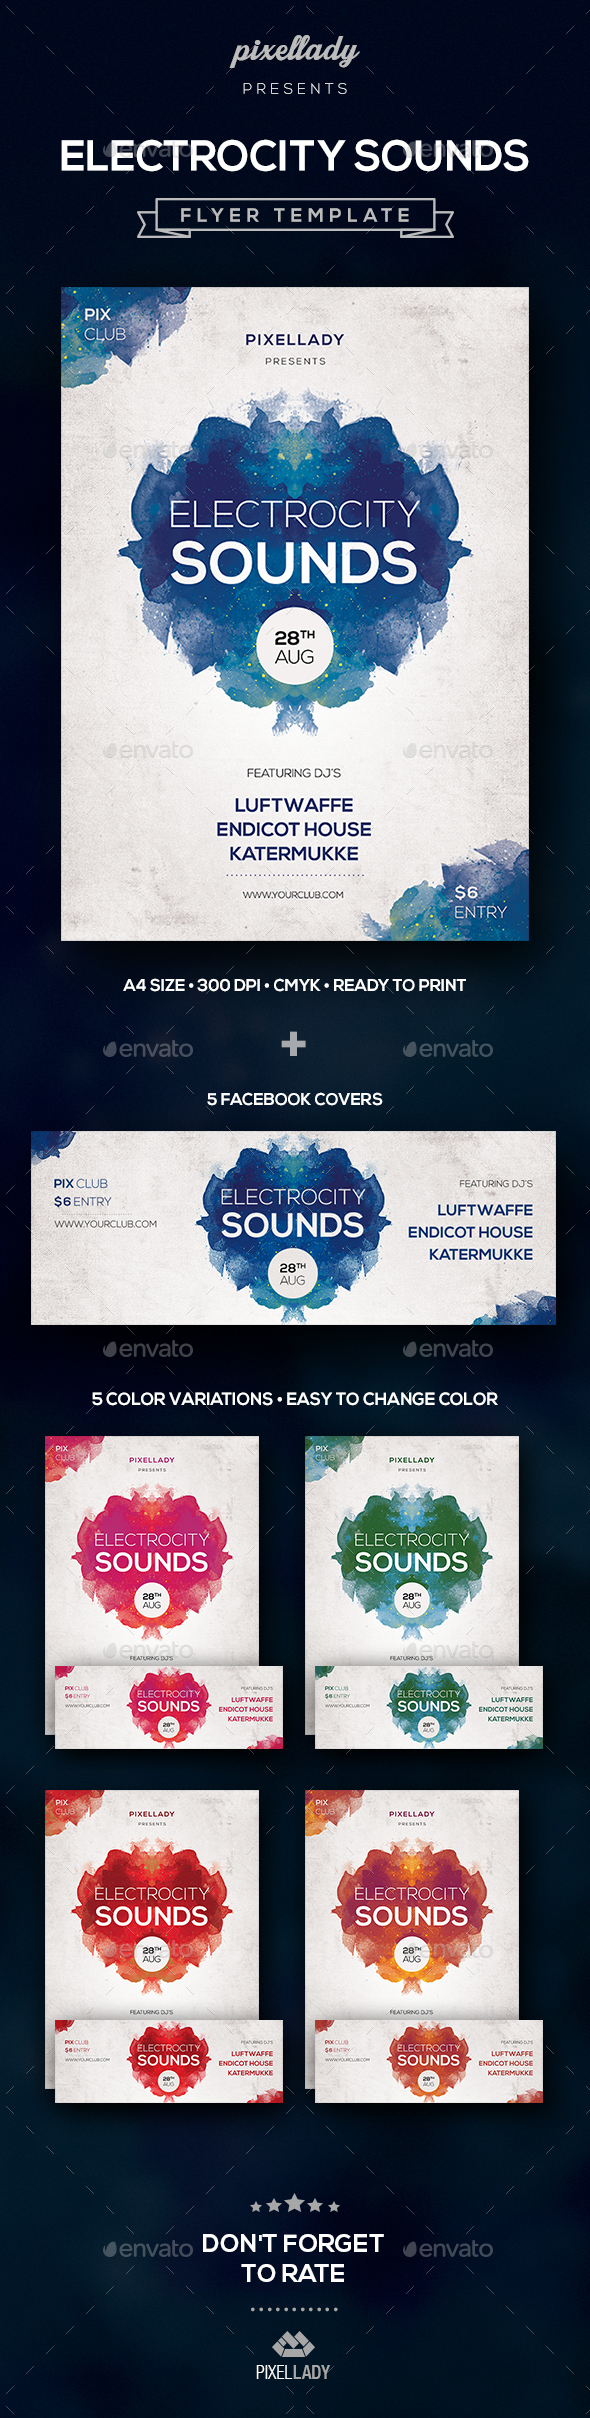 Electrocity Sounds Flyer - Flyers Print Templates